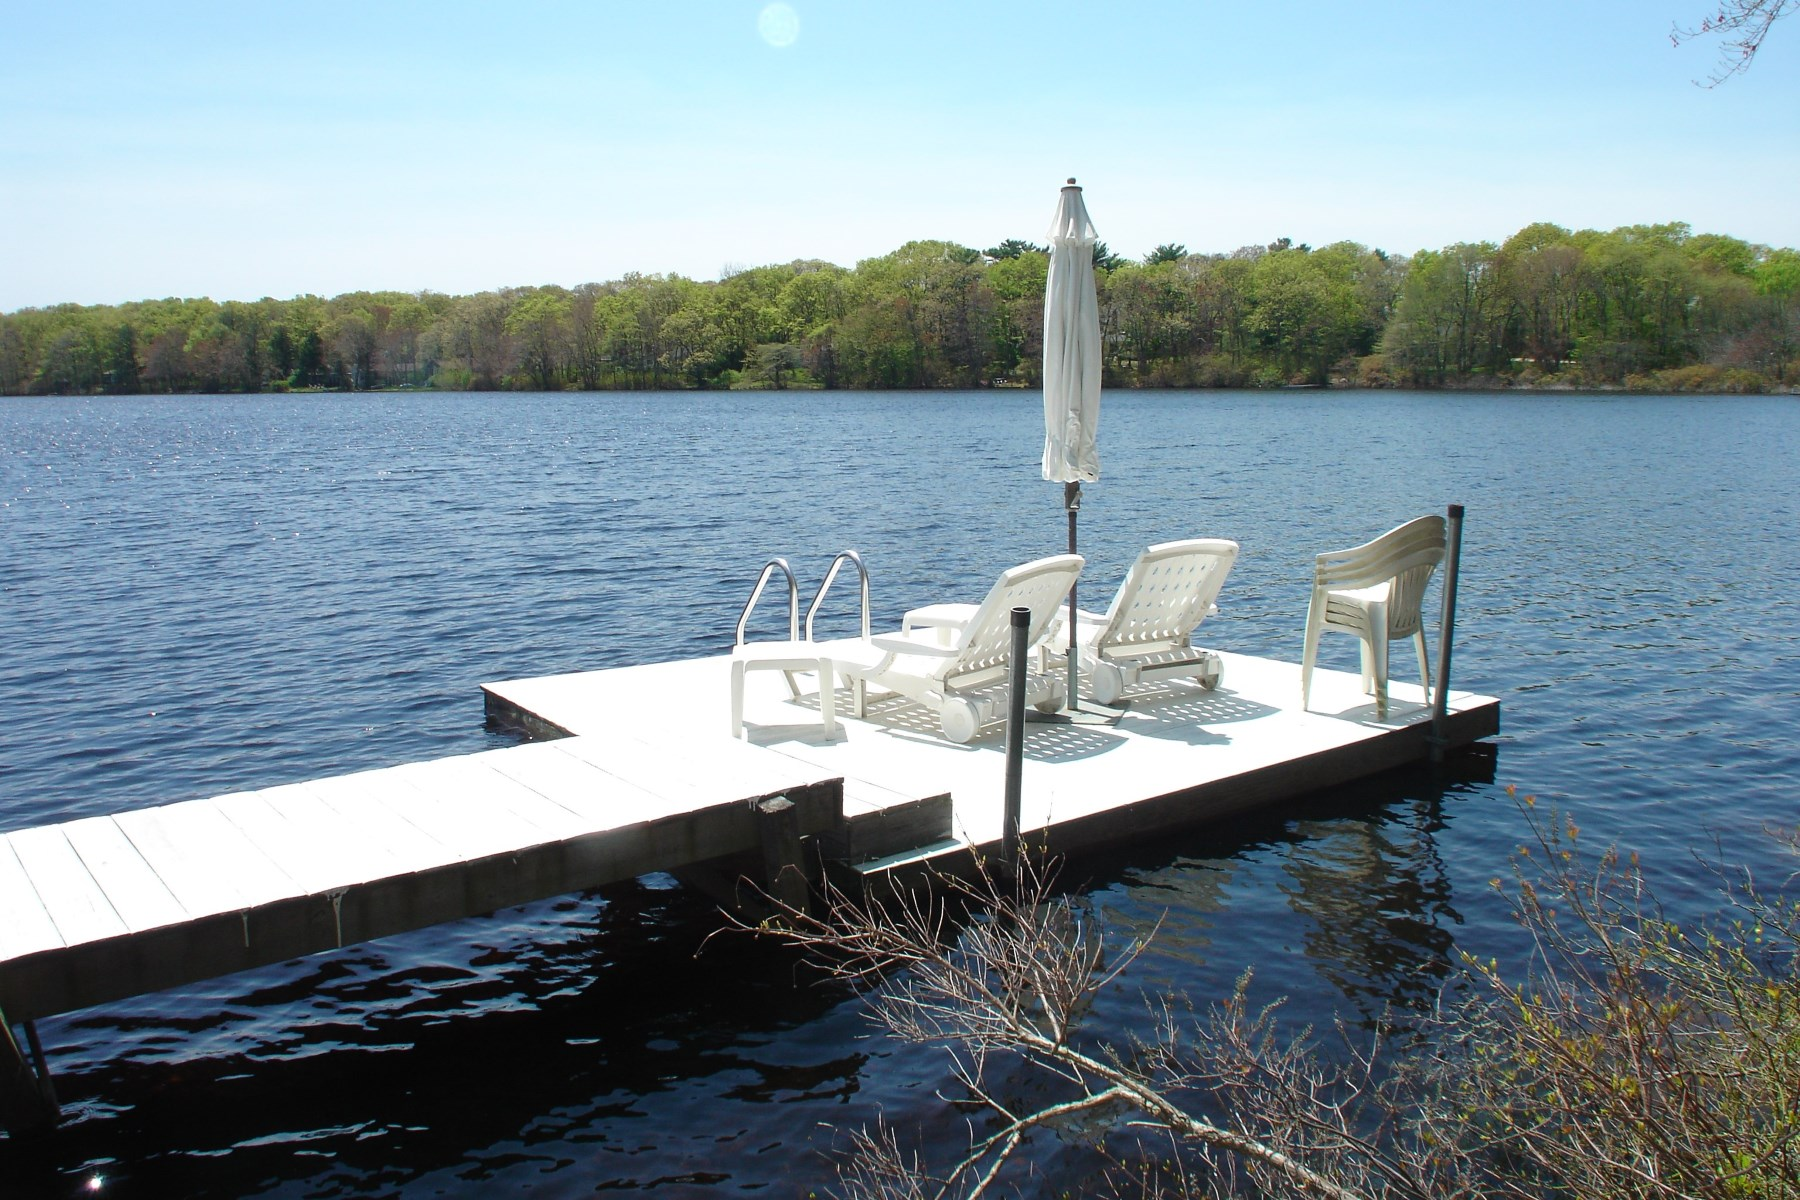 Single Family Home for Rent at Charming Beach House On Lake With Dock 90 Little Fresh Pond Rd Southampton, New York 11968 United States